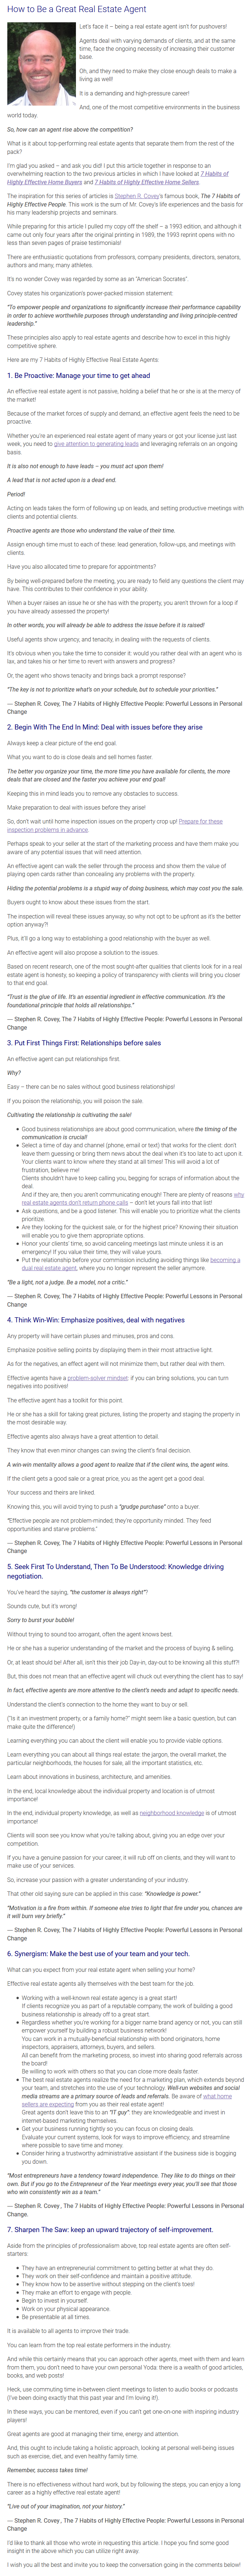 Bill Gassett 7 Habits of Highly Effective Agents.png